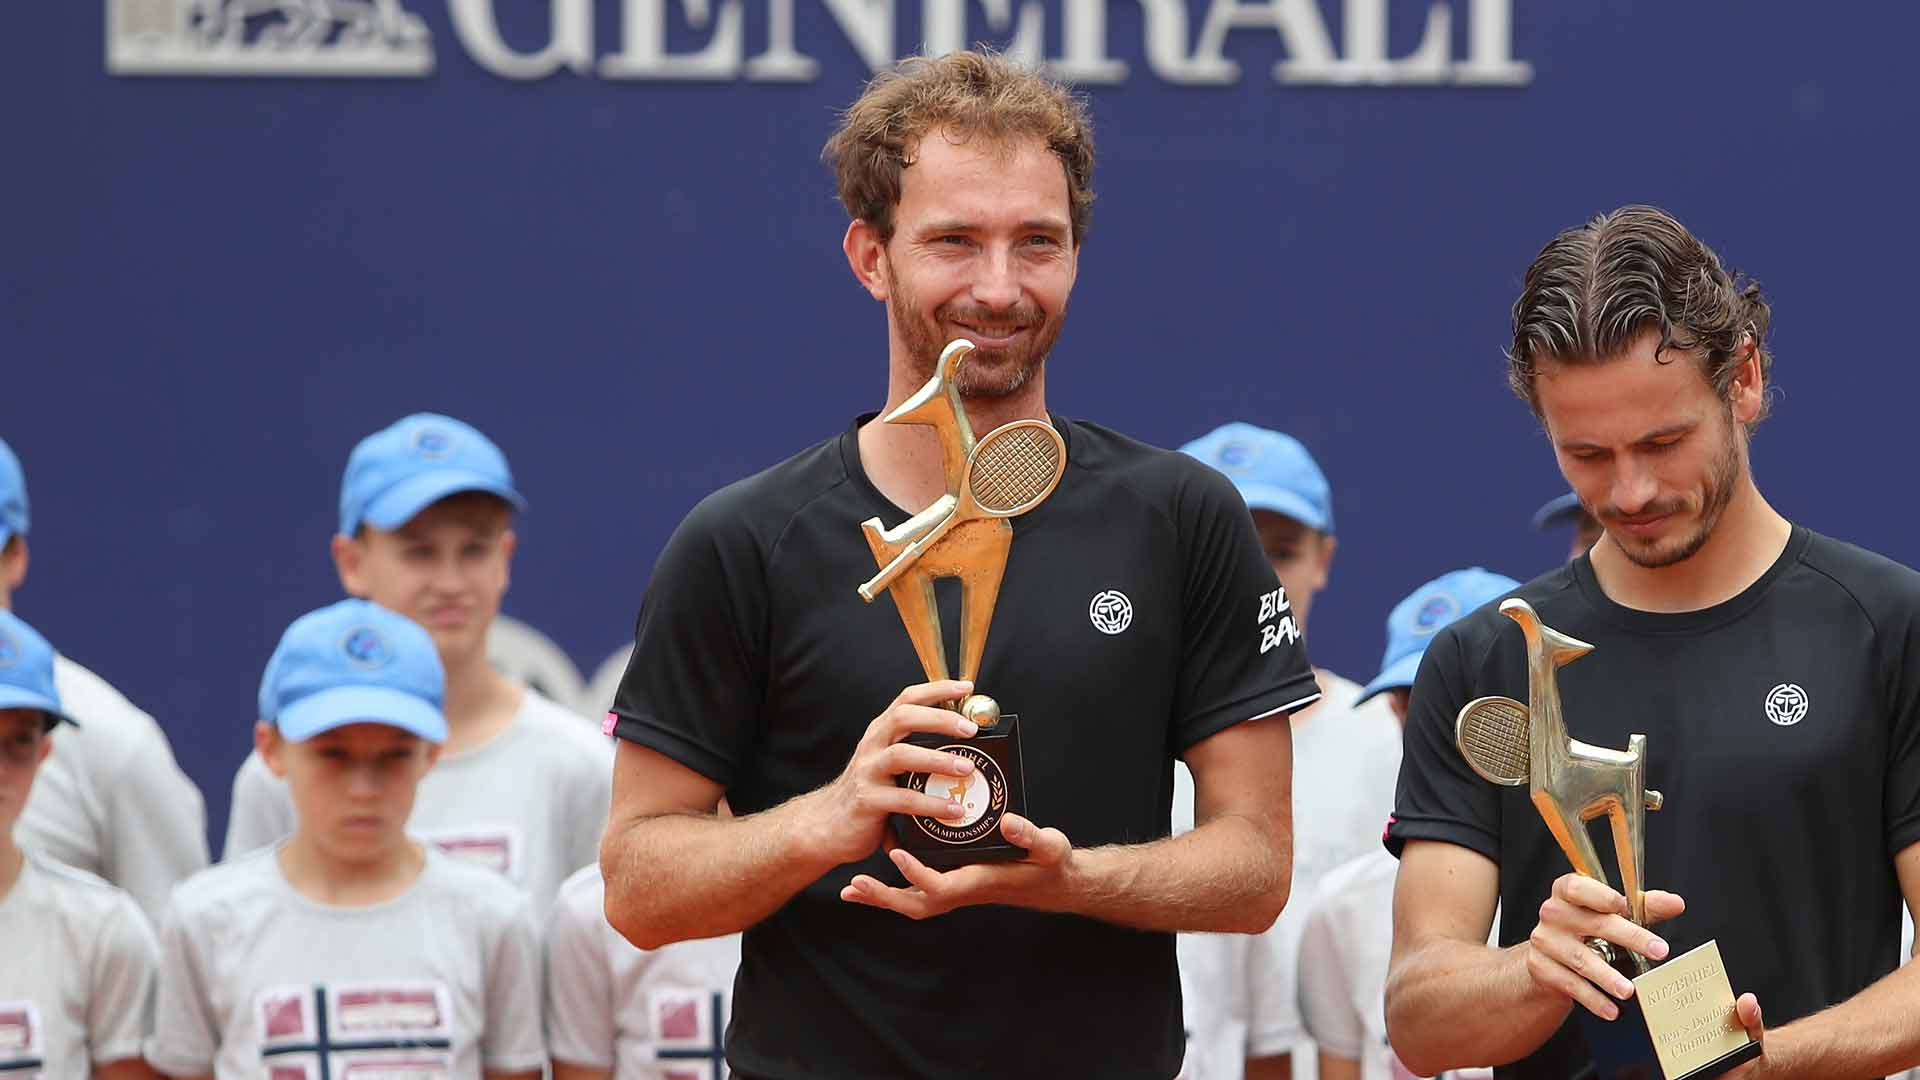 Matwe Middelkoop (L) and Wesley Koolhof won their second ATP World Tour doubles title of the year in Kitzbuhel.